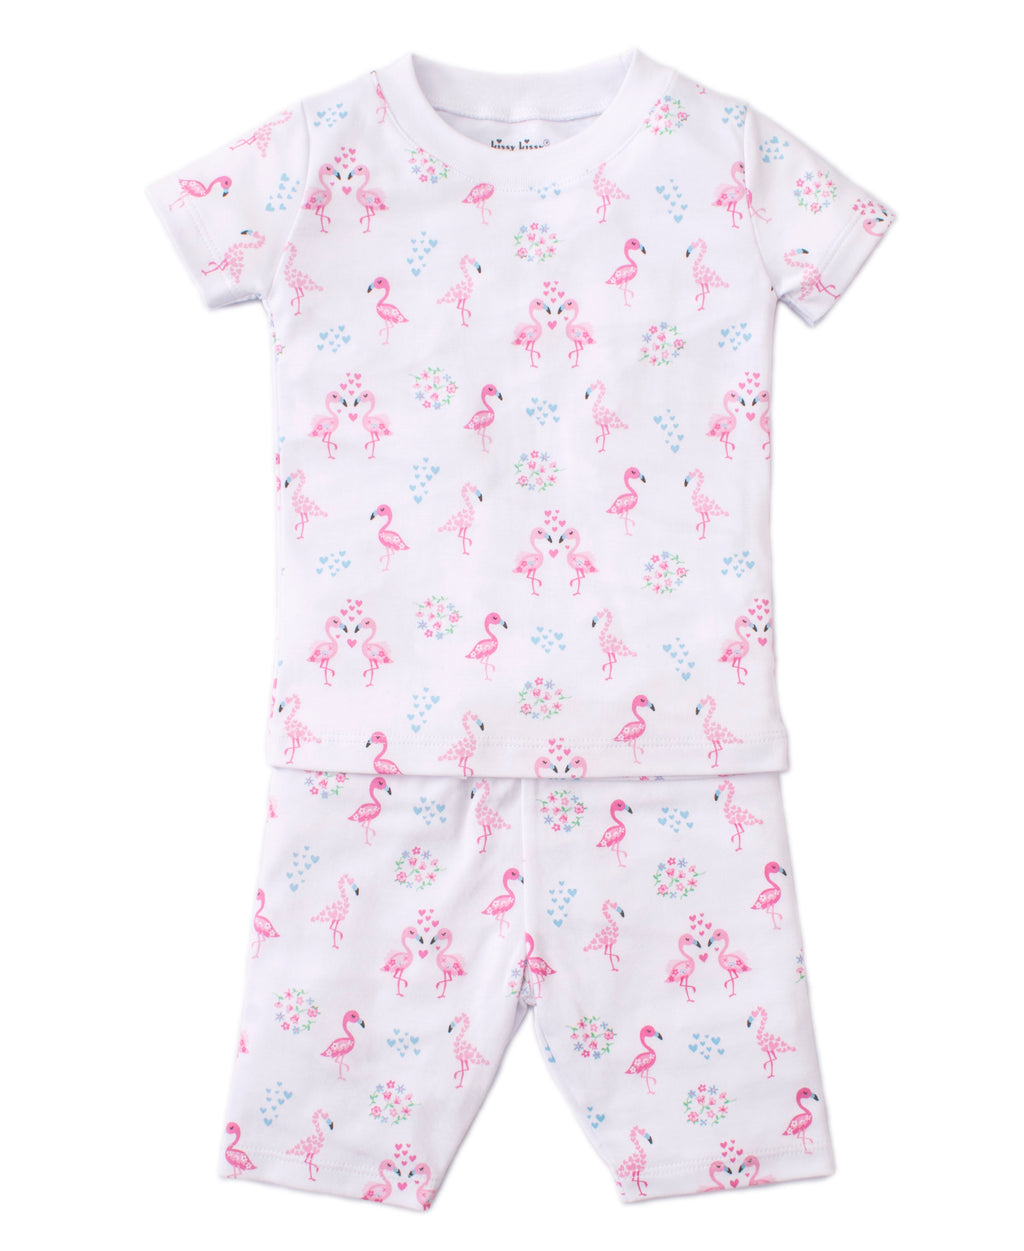 Flowering Flamingos Short Pajama Set